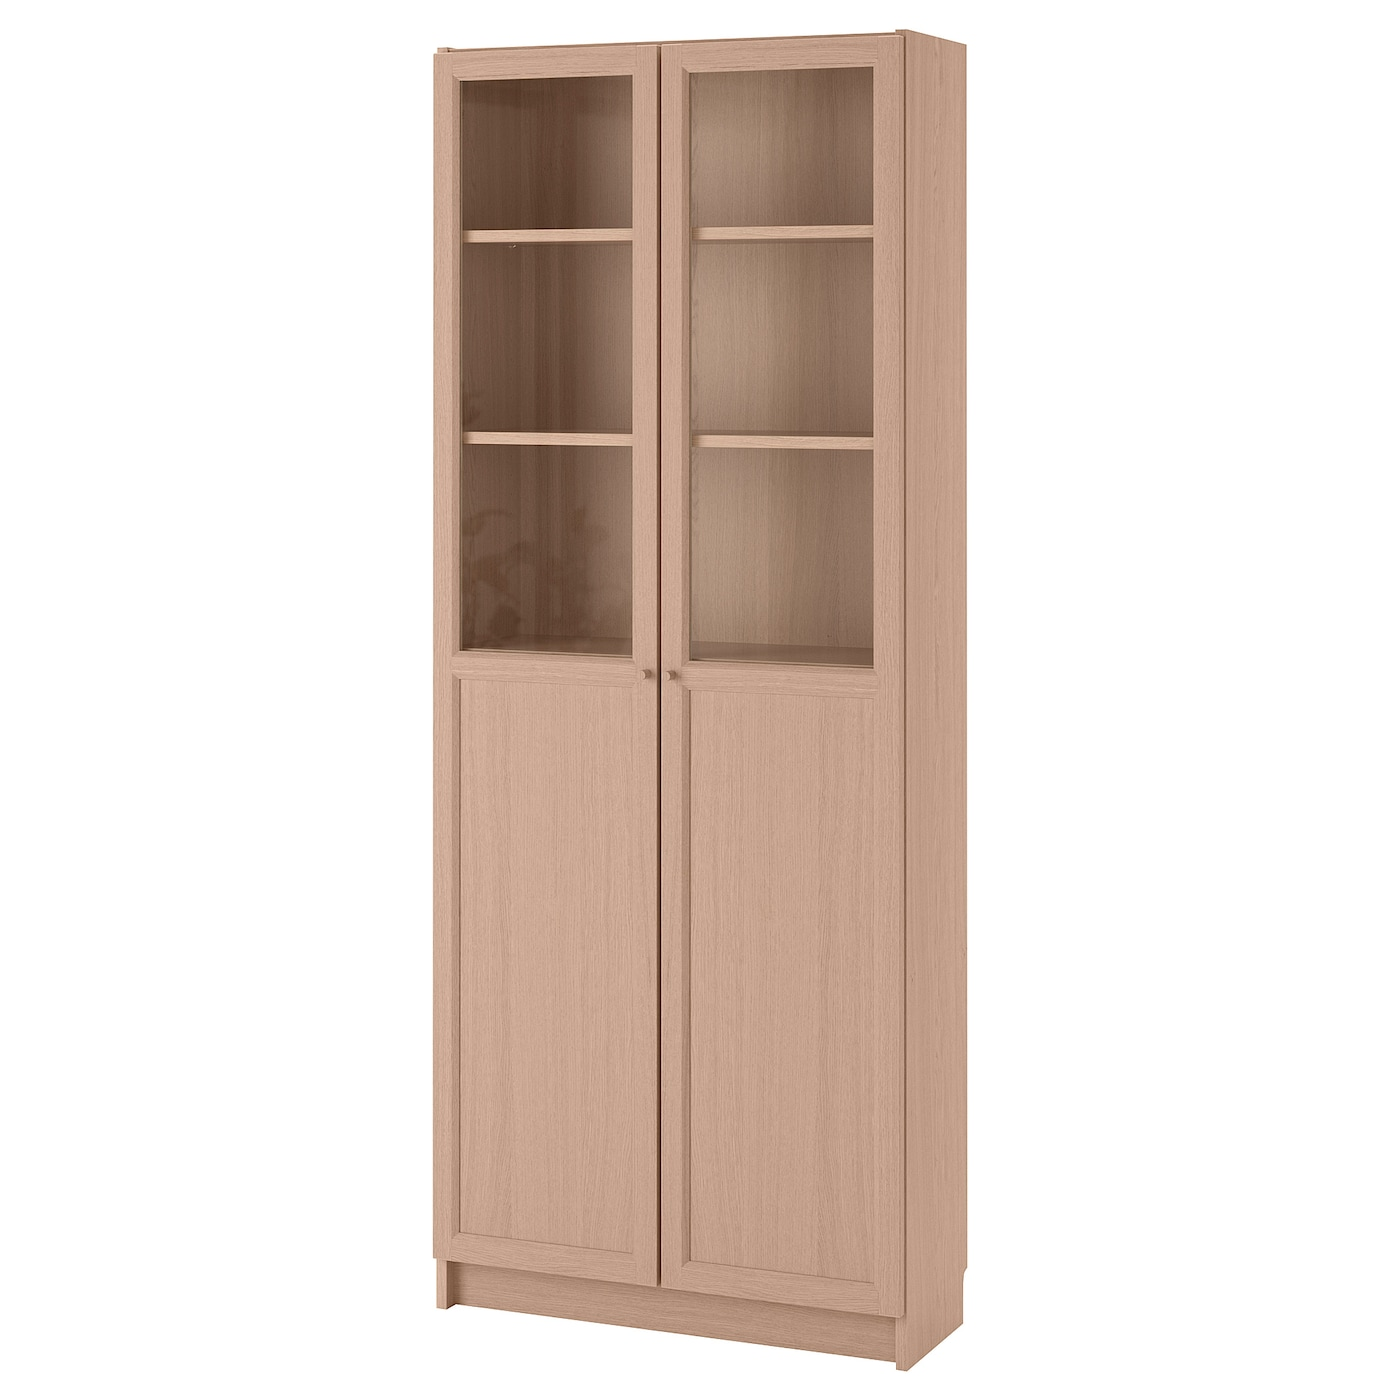 IKEA BILLY bookcase with panel/glass doors Surface made from natural wood veneer.